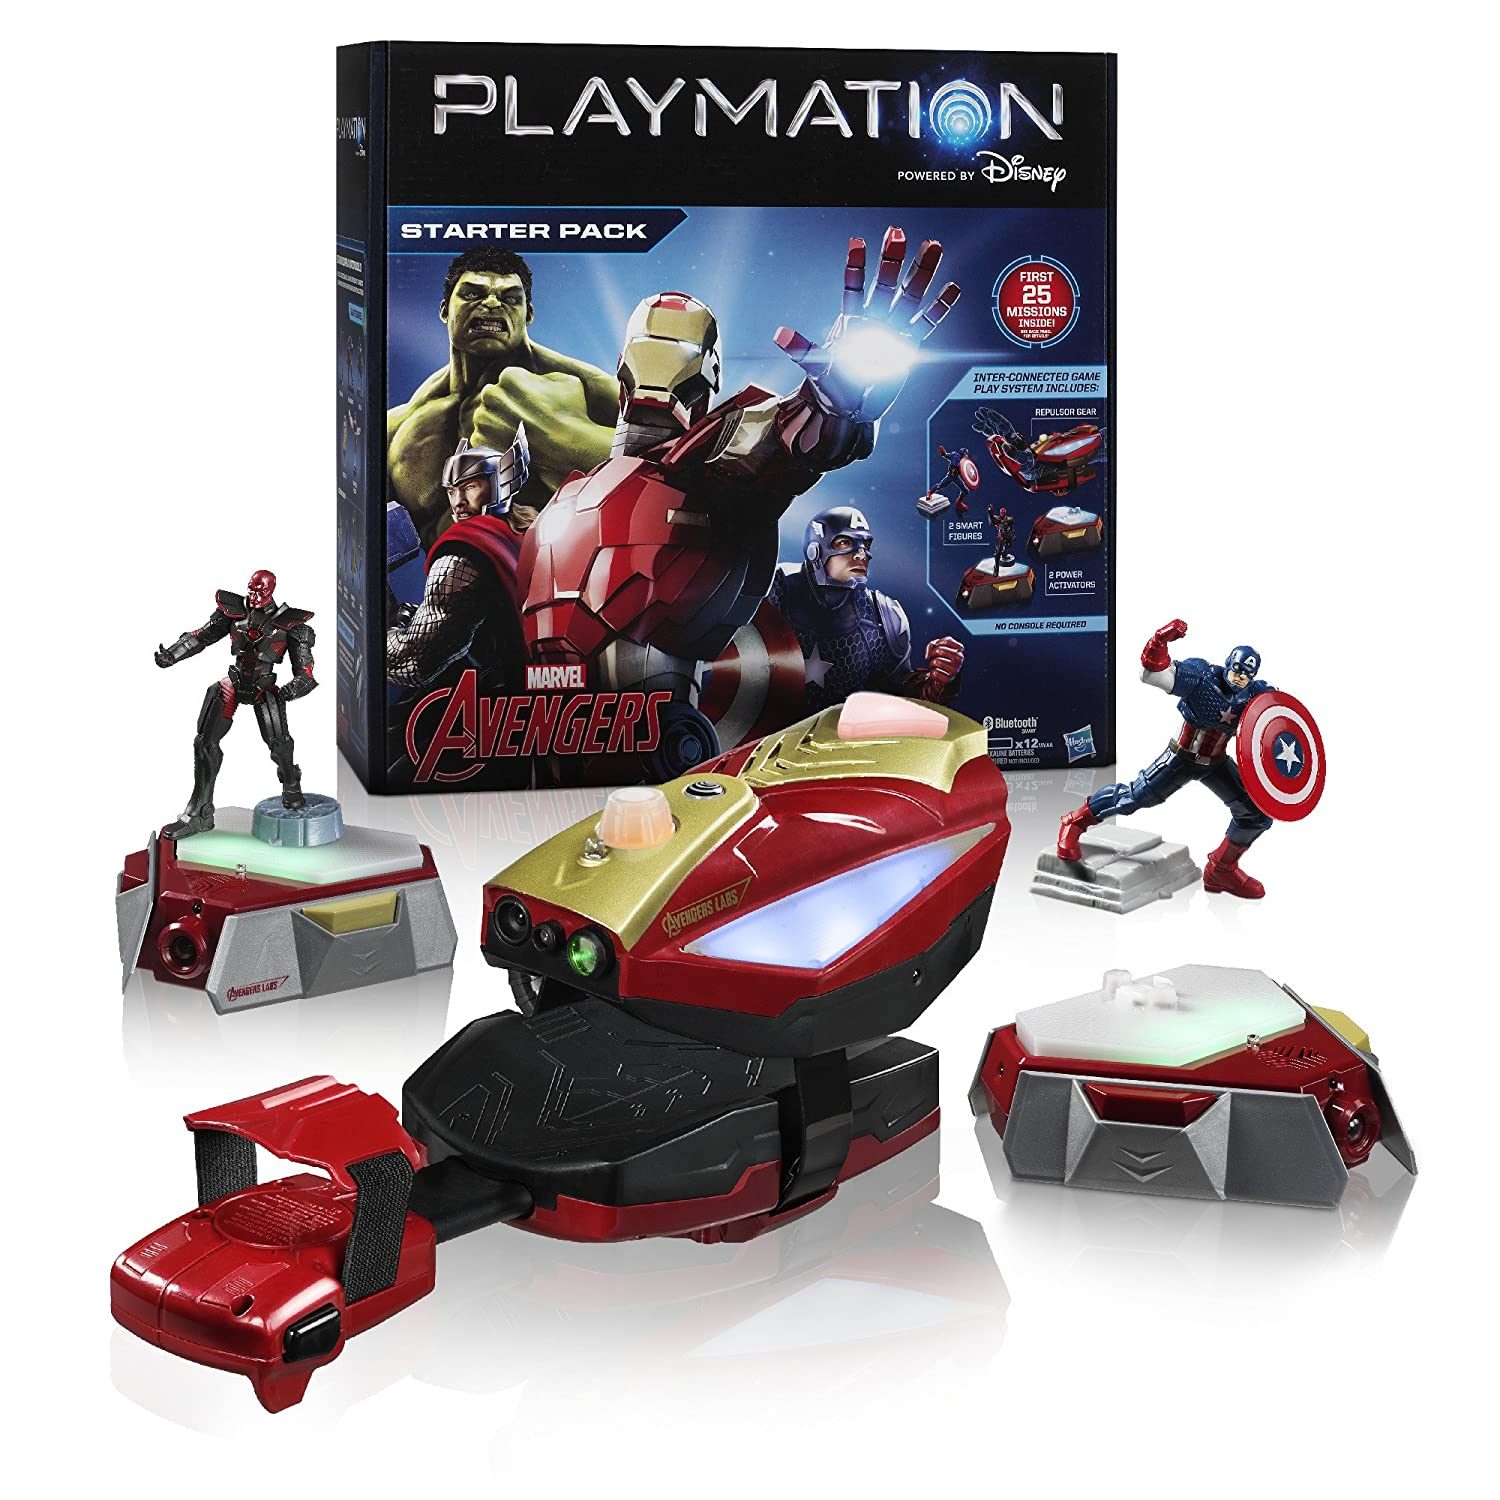 Playmation Is The Next Step In The Evolution Of Play